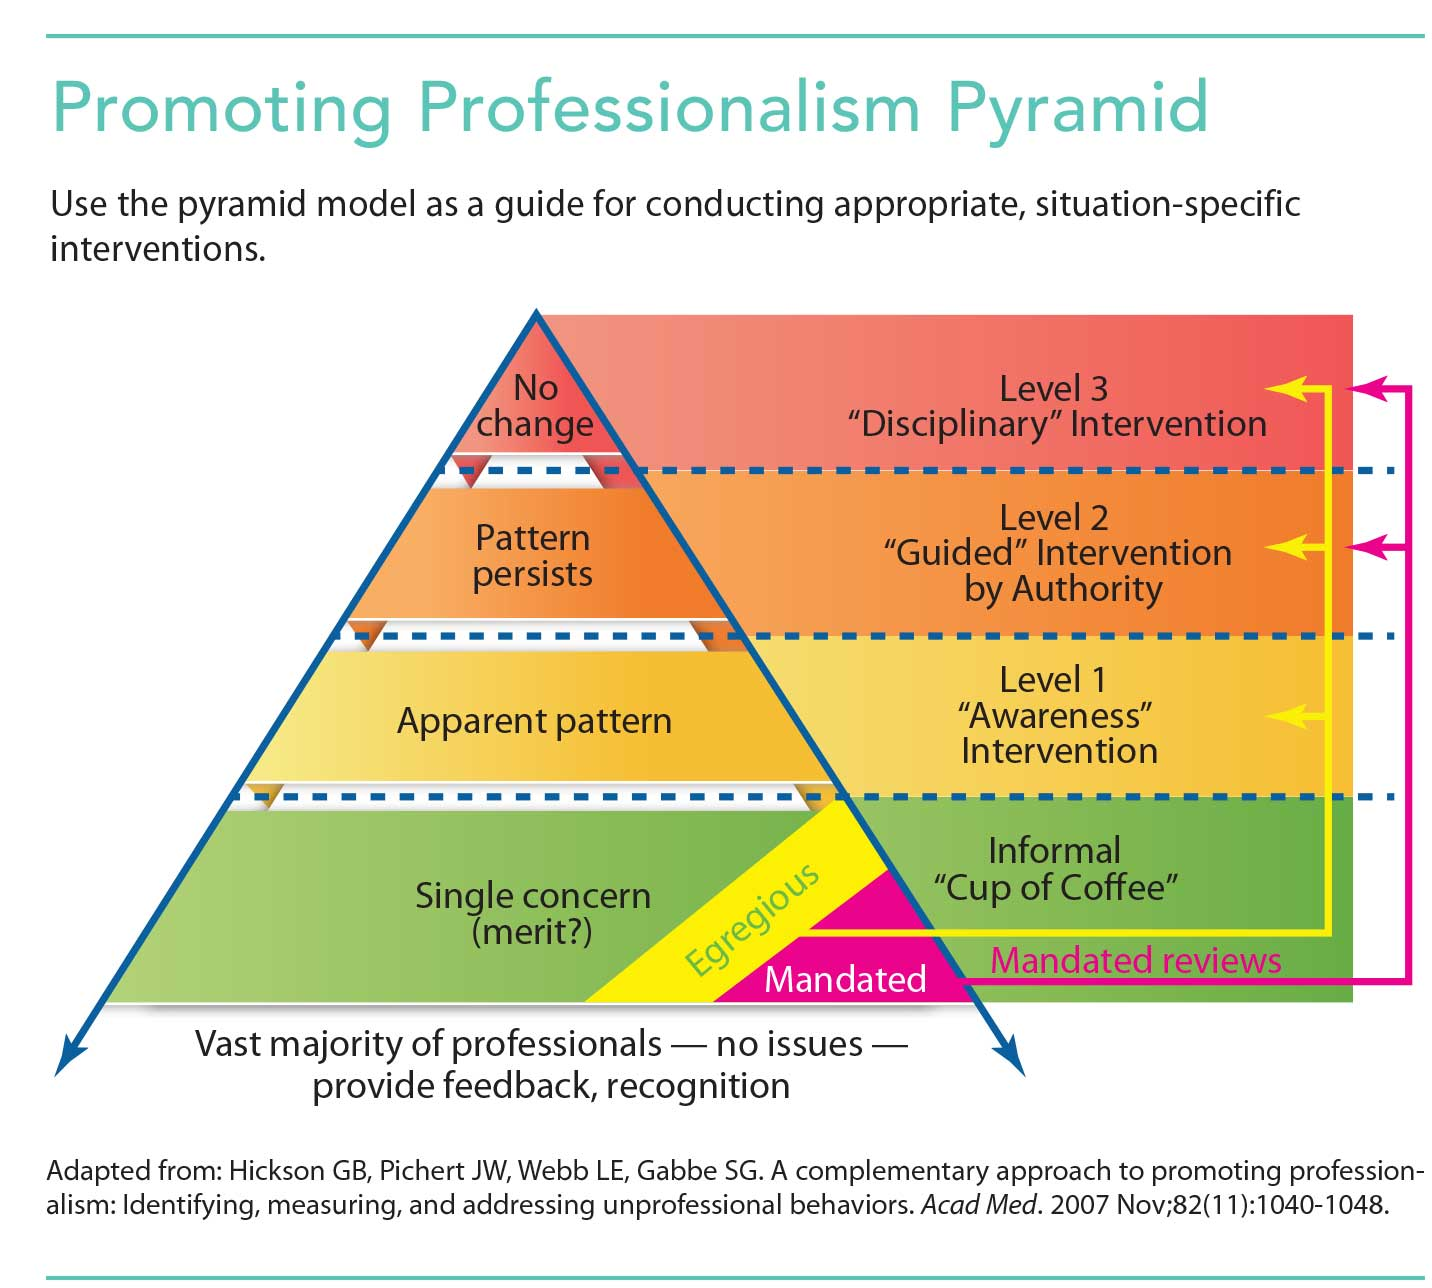 Nurses' essential role in supporting professionalism